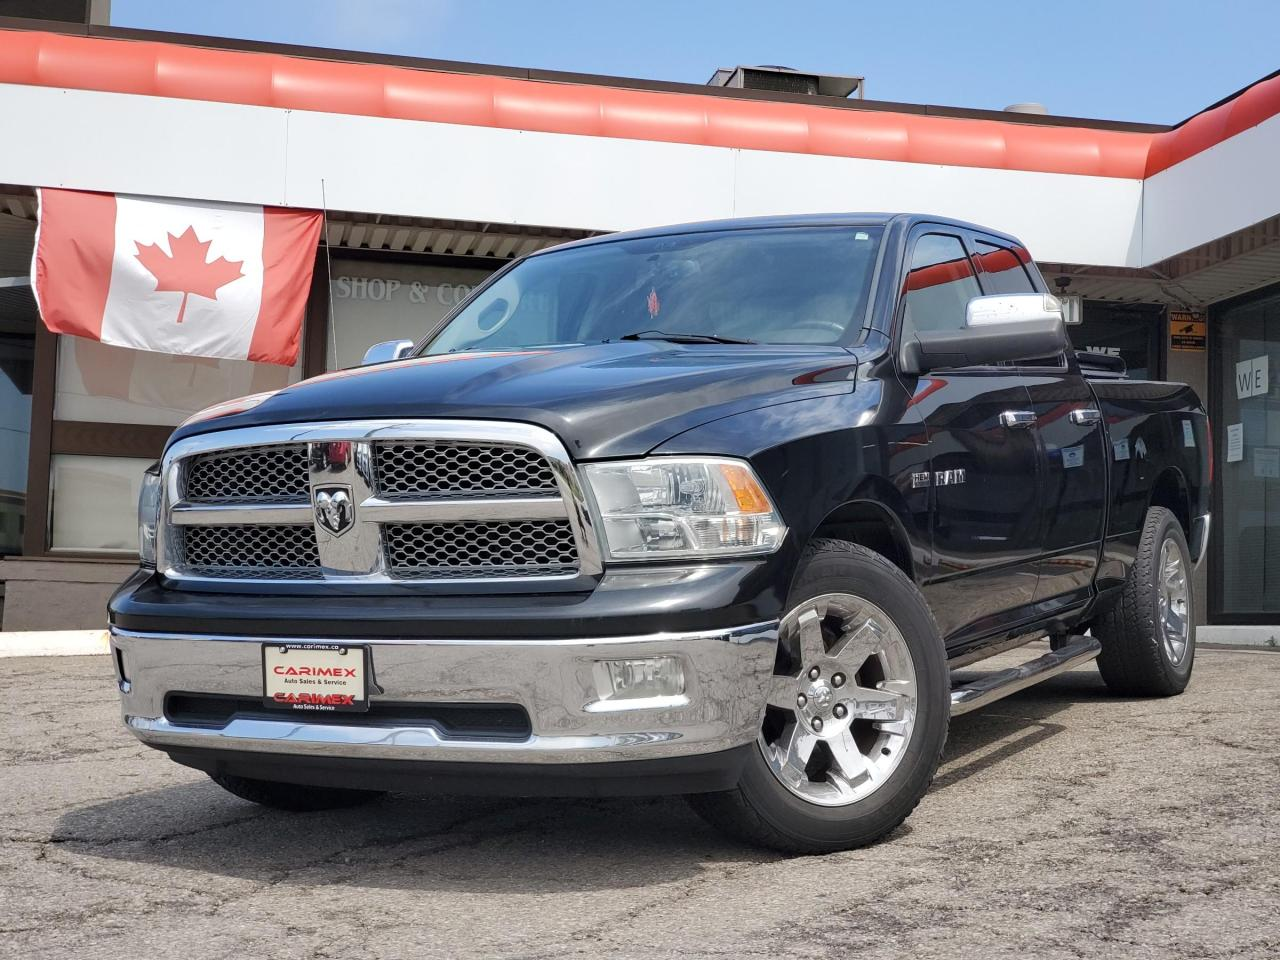 used 2010 dodge ram 1500 laramie navi heated and cooled seats clean for sale in waterloo, ontario carpages.ca